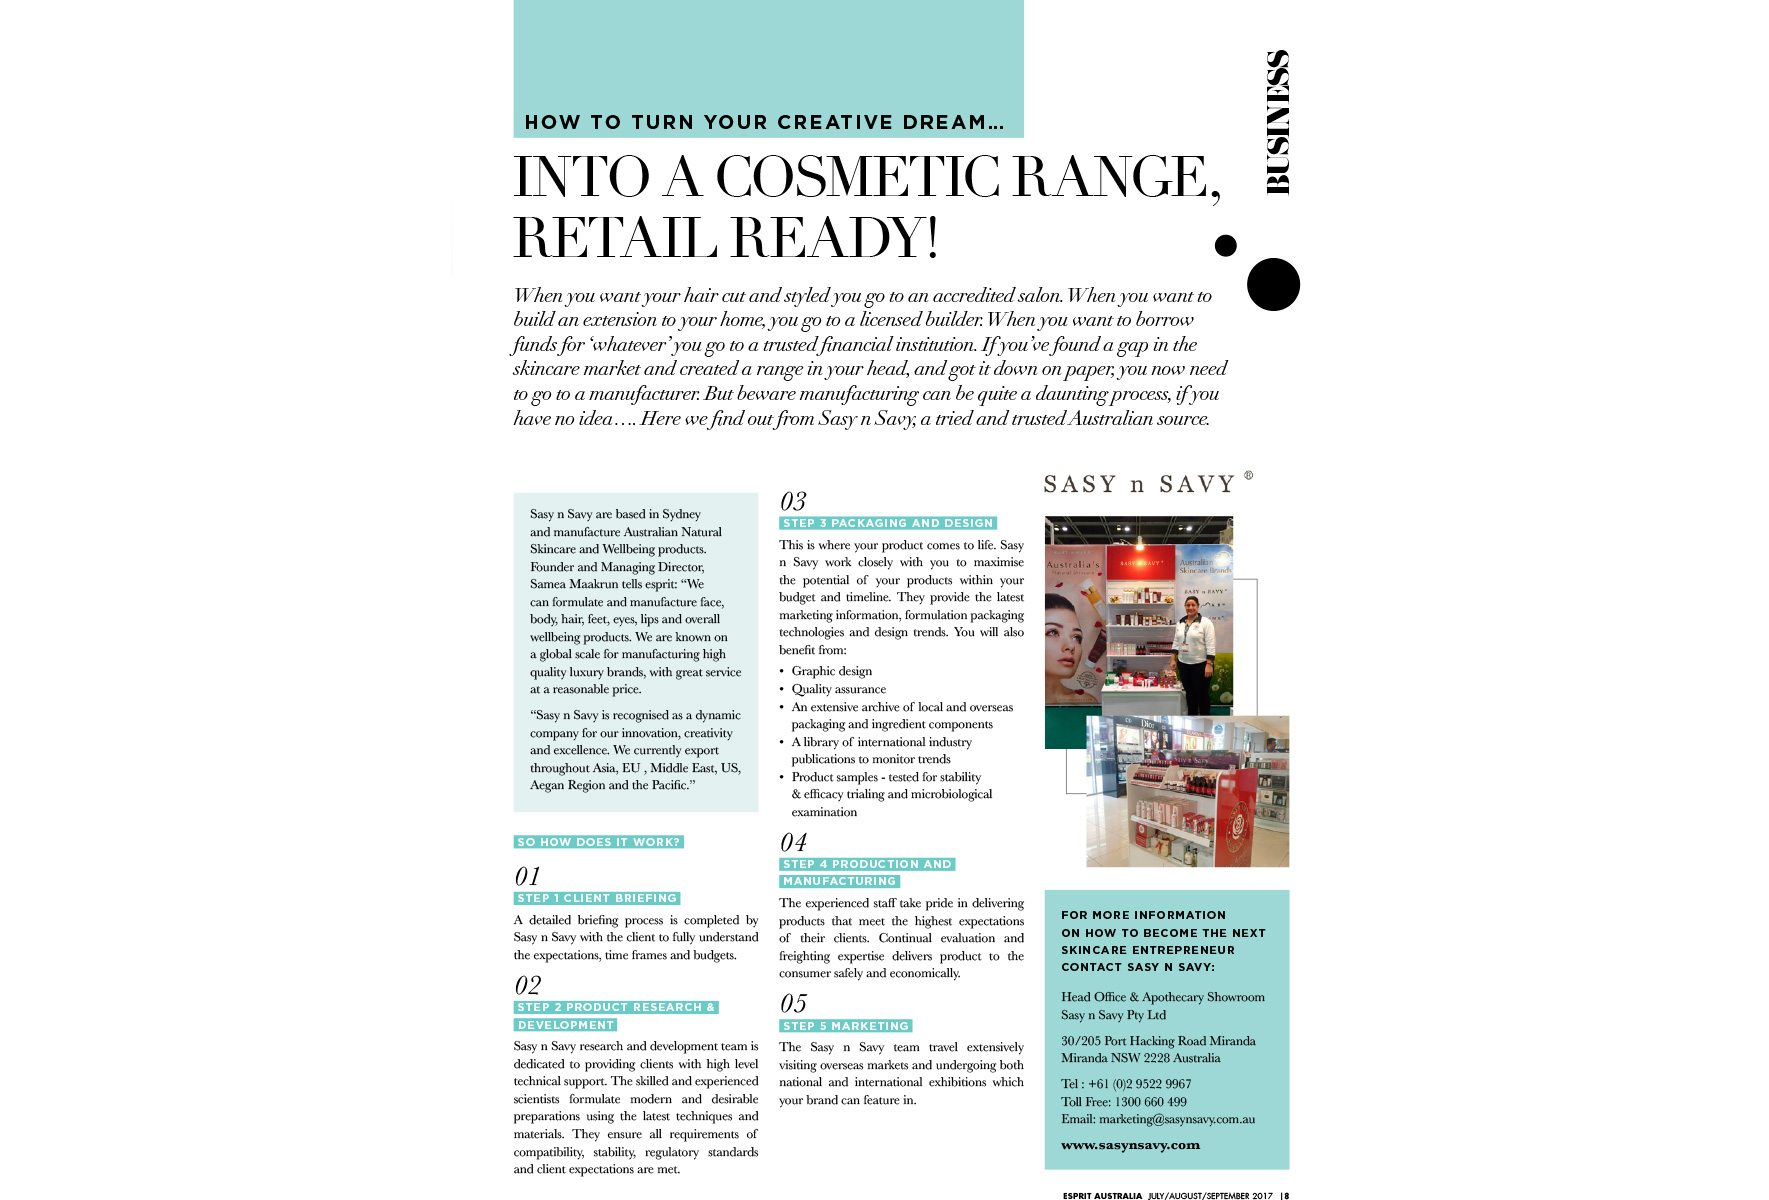 How-to-turn-your-creative-dream-Into-a-cosmetic-range-retail-ready_Business_Sasy-n-Savy-75